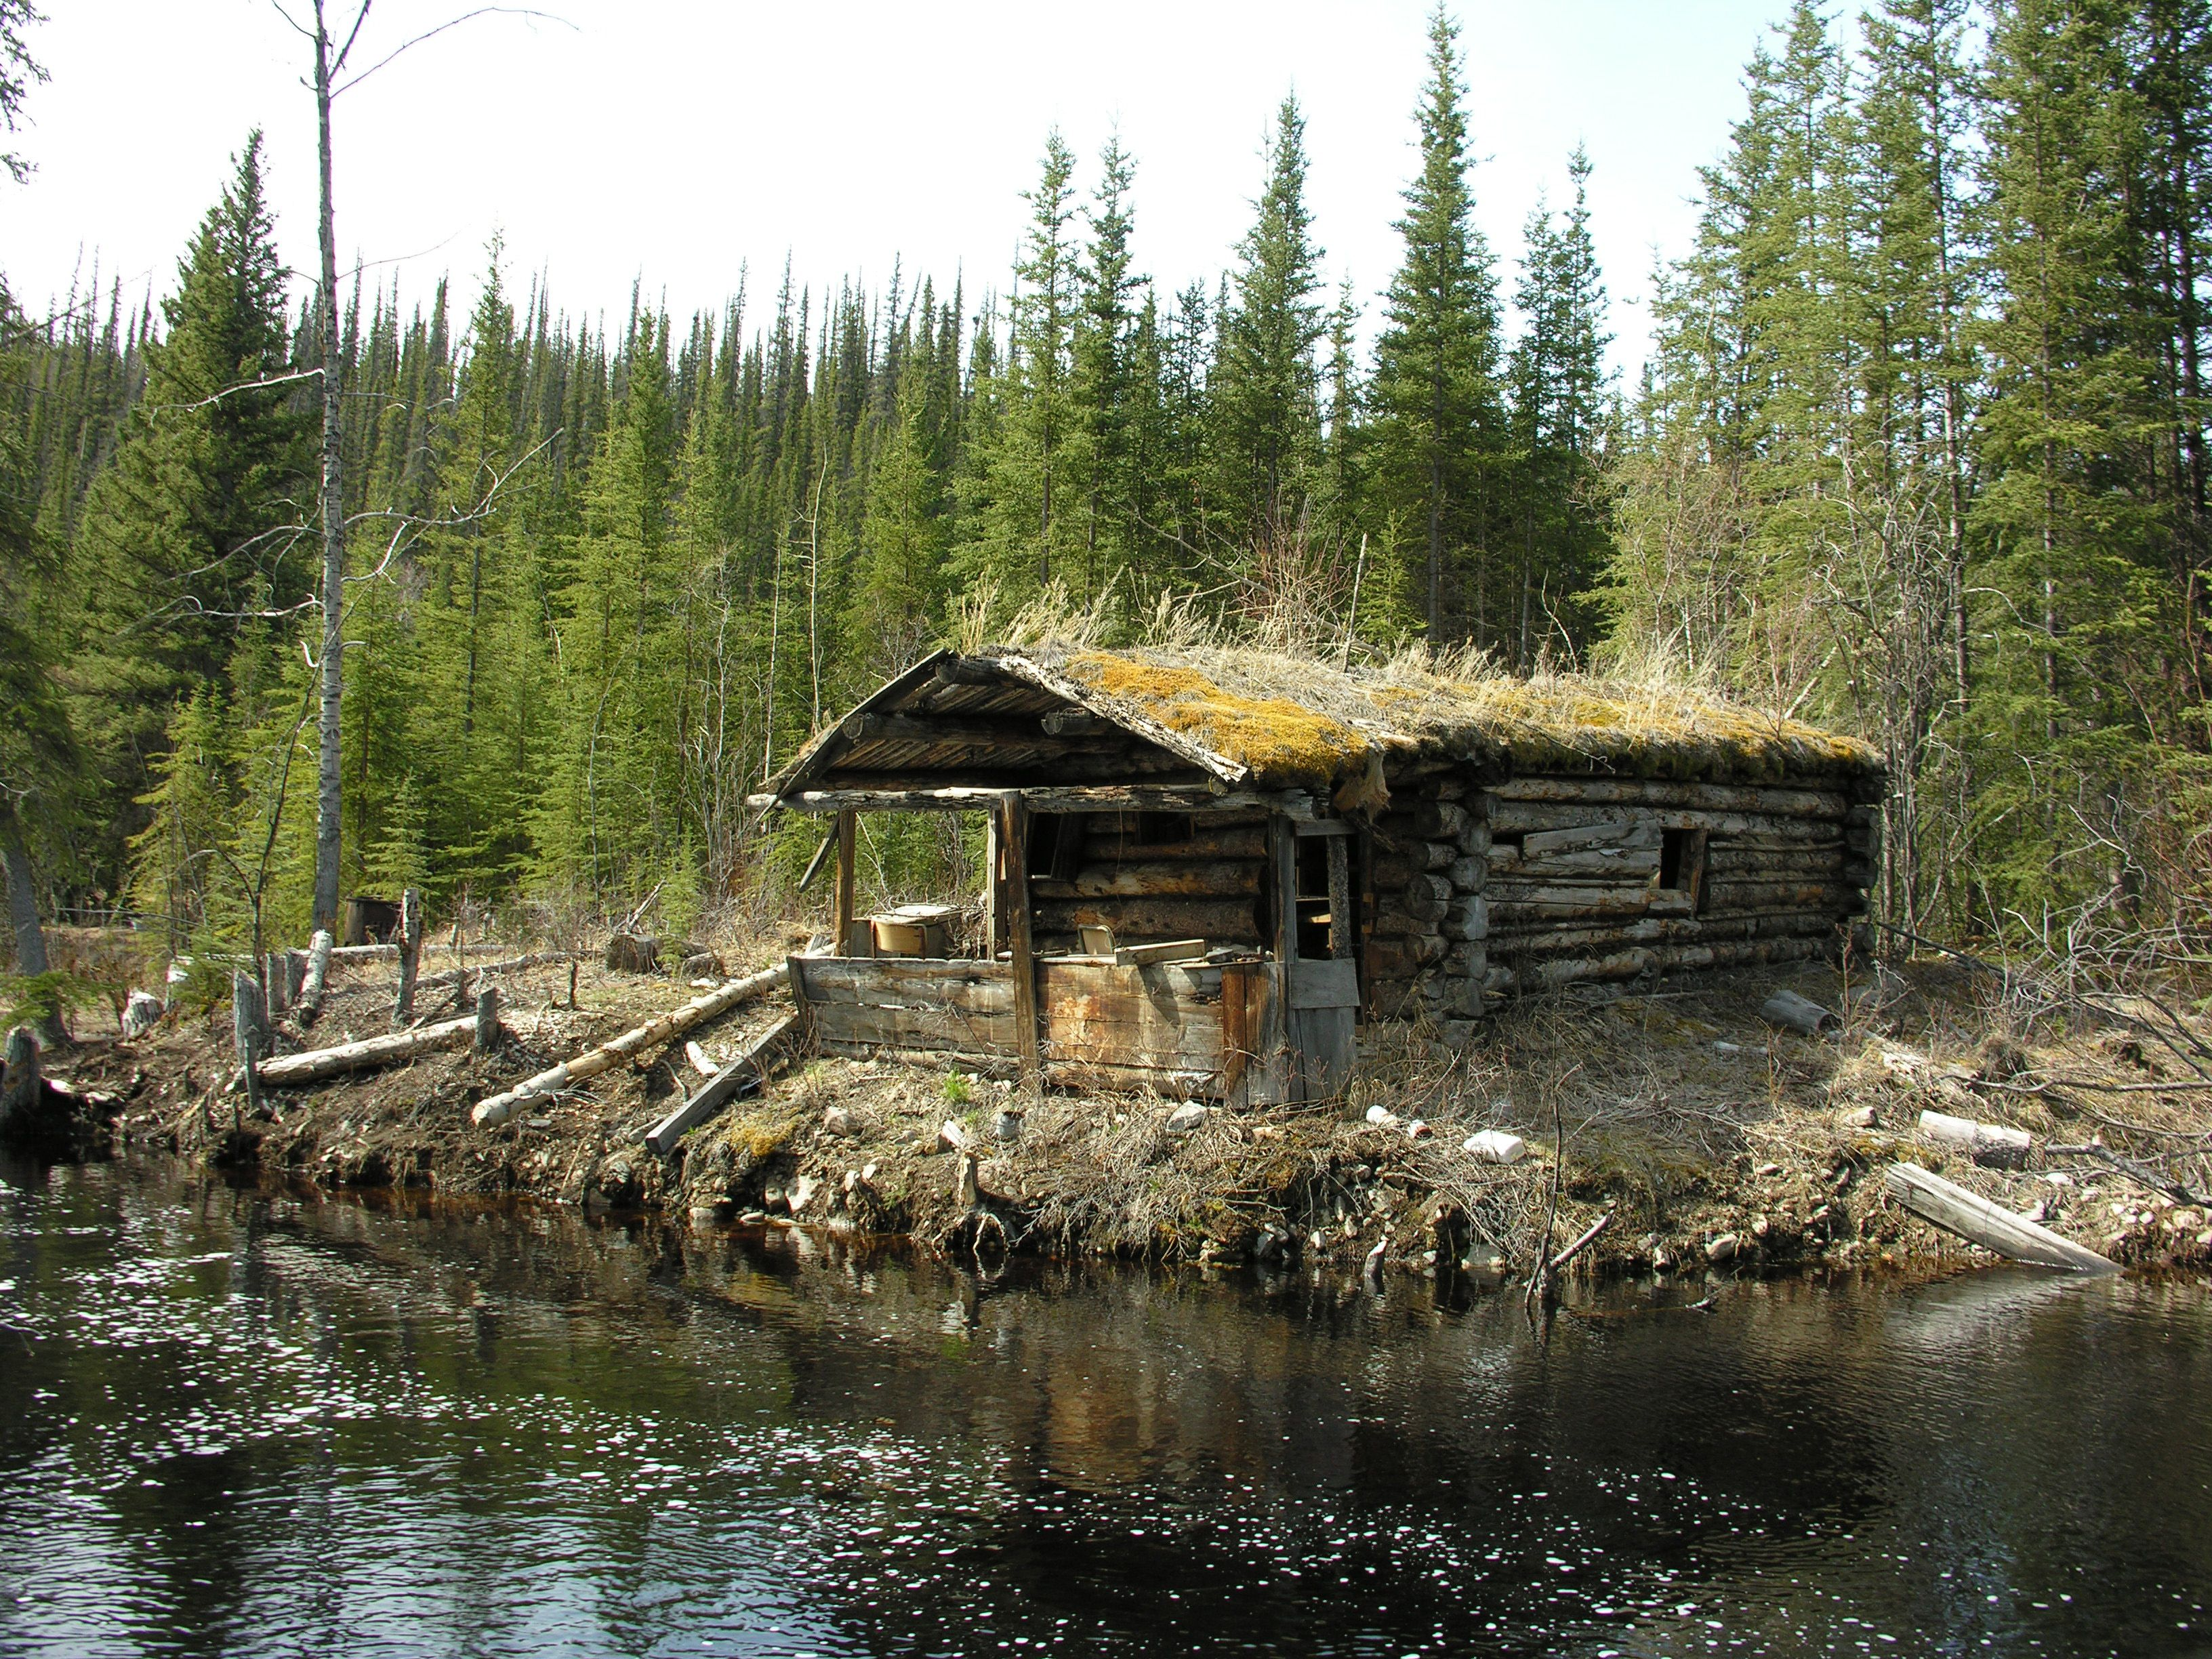 Log cabin in the woods by a lake - Old Cabin In The Woods Old Log Cabin Cabin Forest Log Cabin